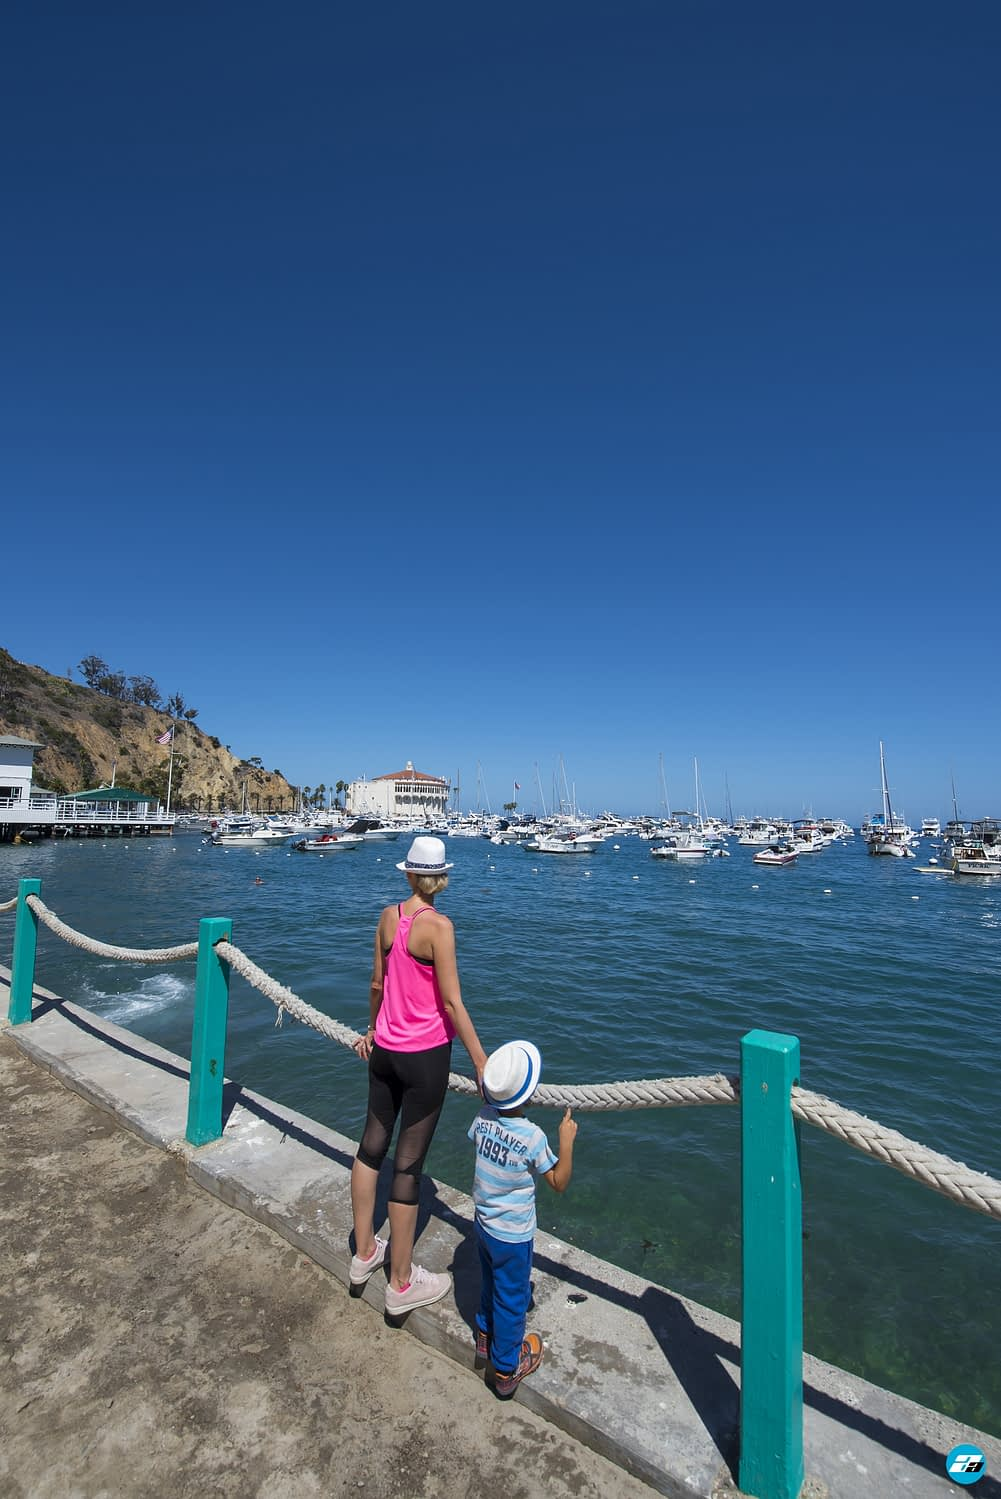 Catalina Island, Chanel Islands National Park, California, Casino View. Pier View. Mother and Son. Family.